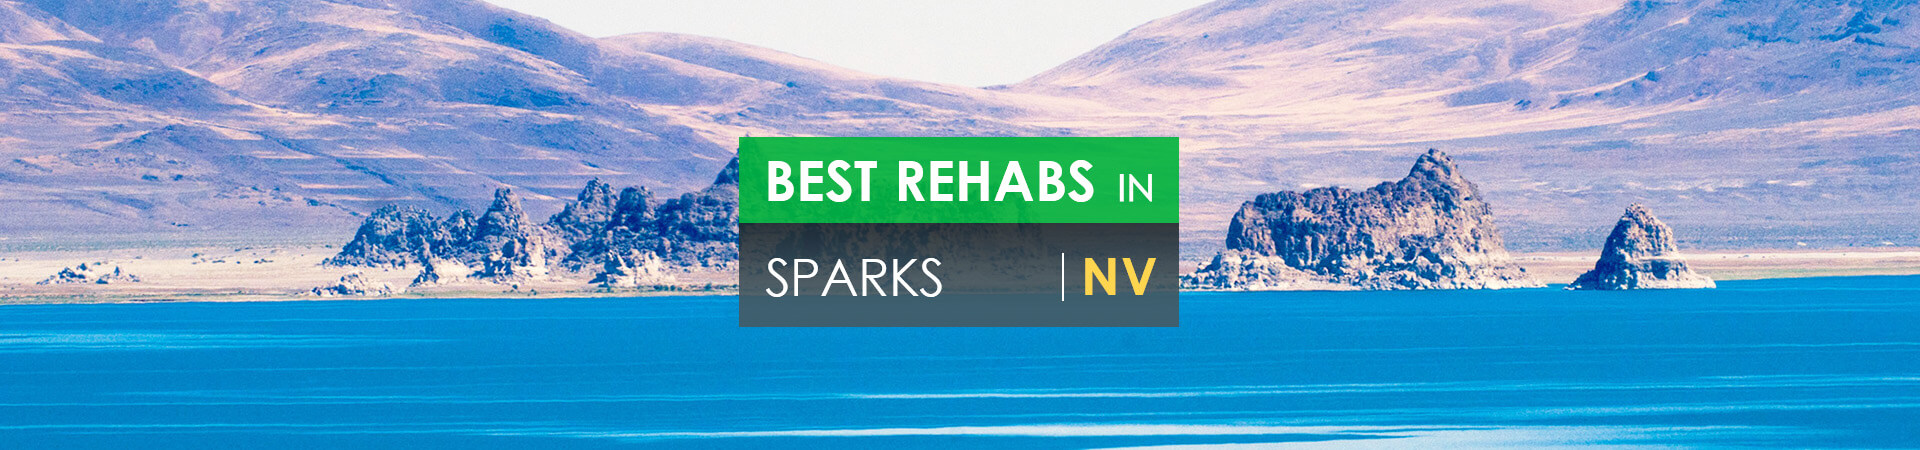 Best rehabs in Sparks, NV